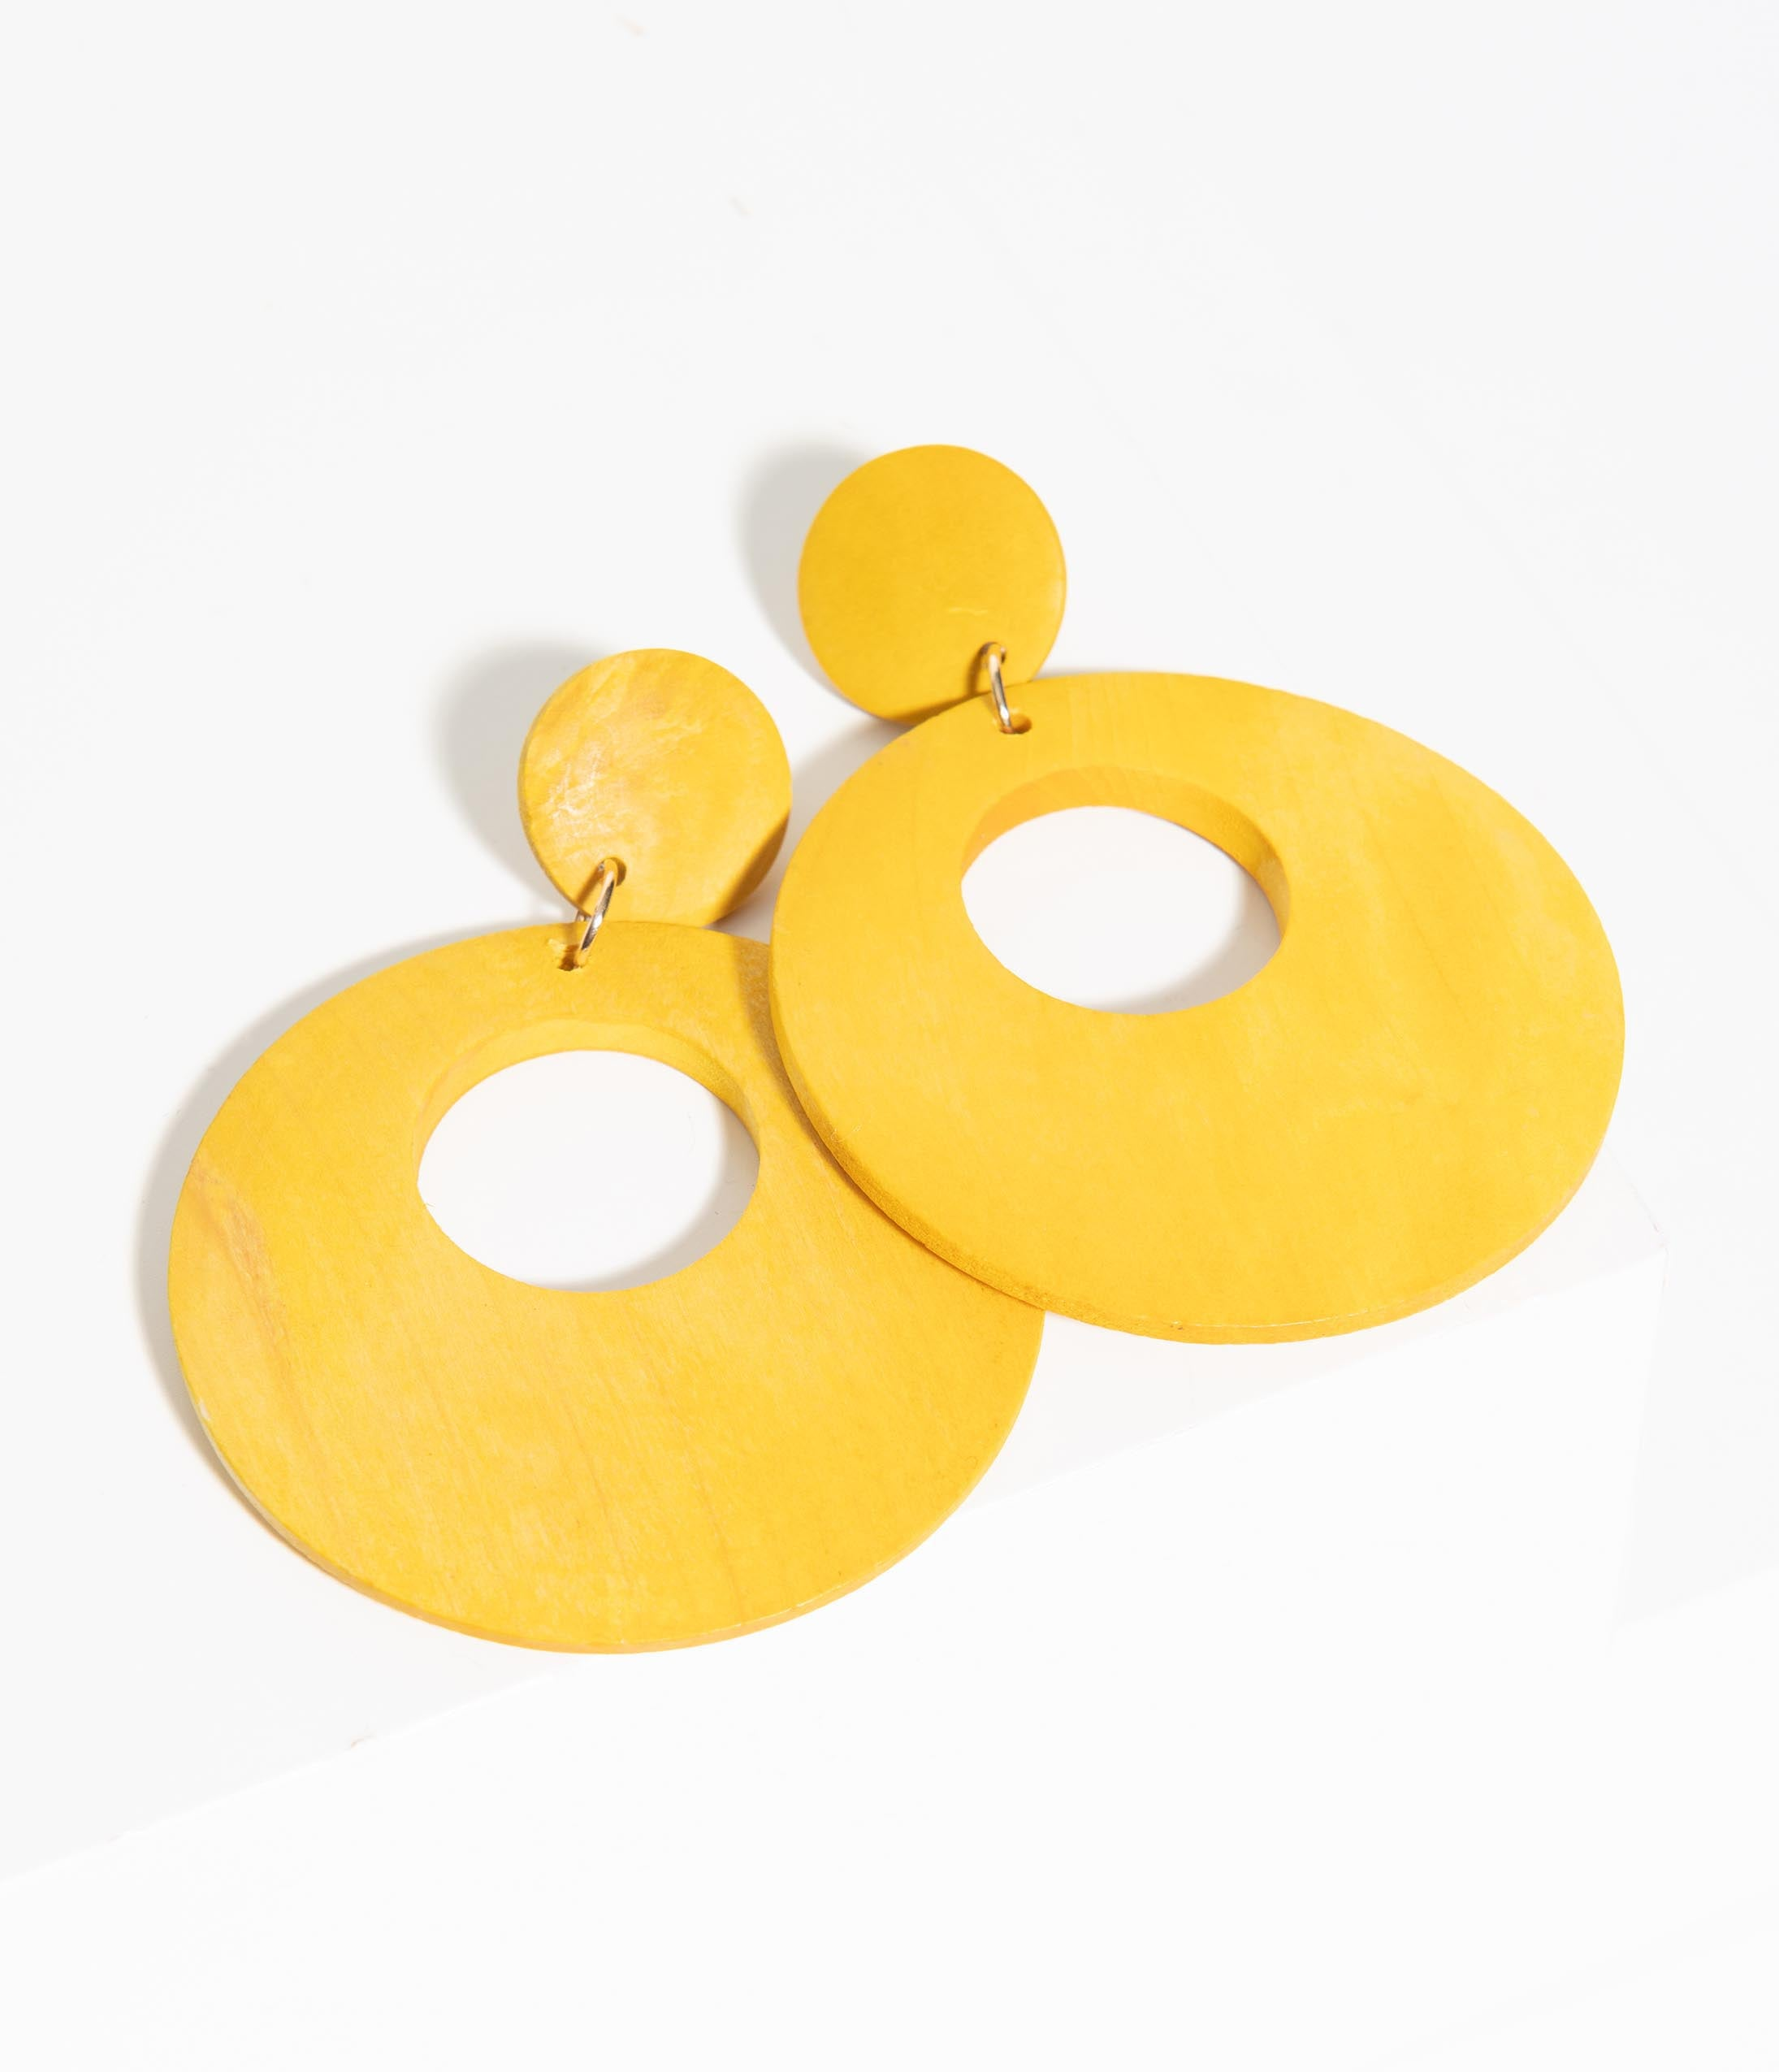 60s -70s Jewelry – Necklaces, Earrings, Rings, Bracelets 1960S Mustard Wooden Circle Drop Earring $16.00 AT vintagedancer.com